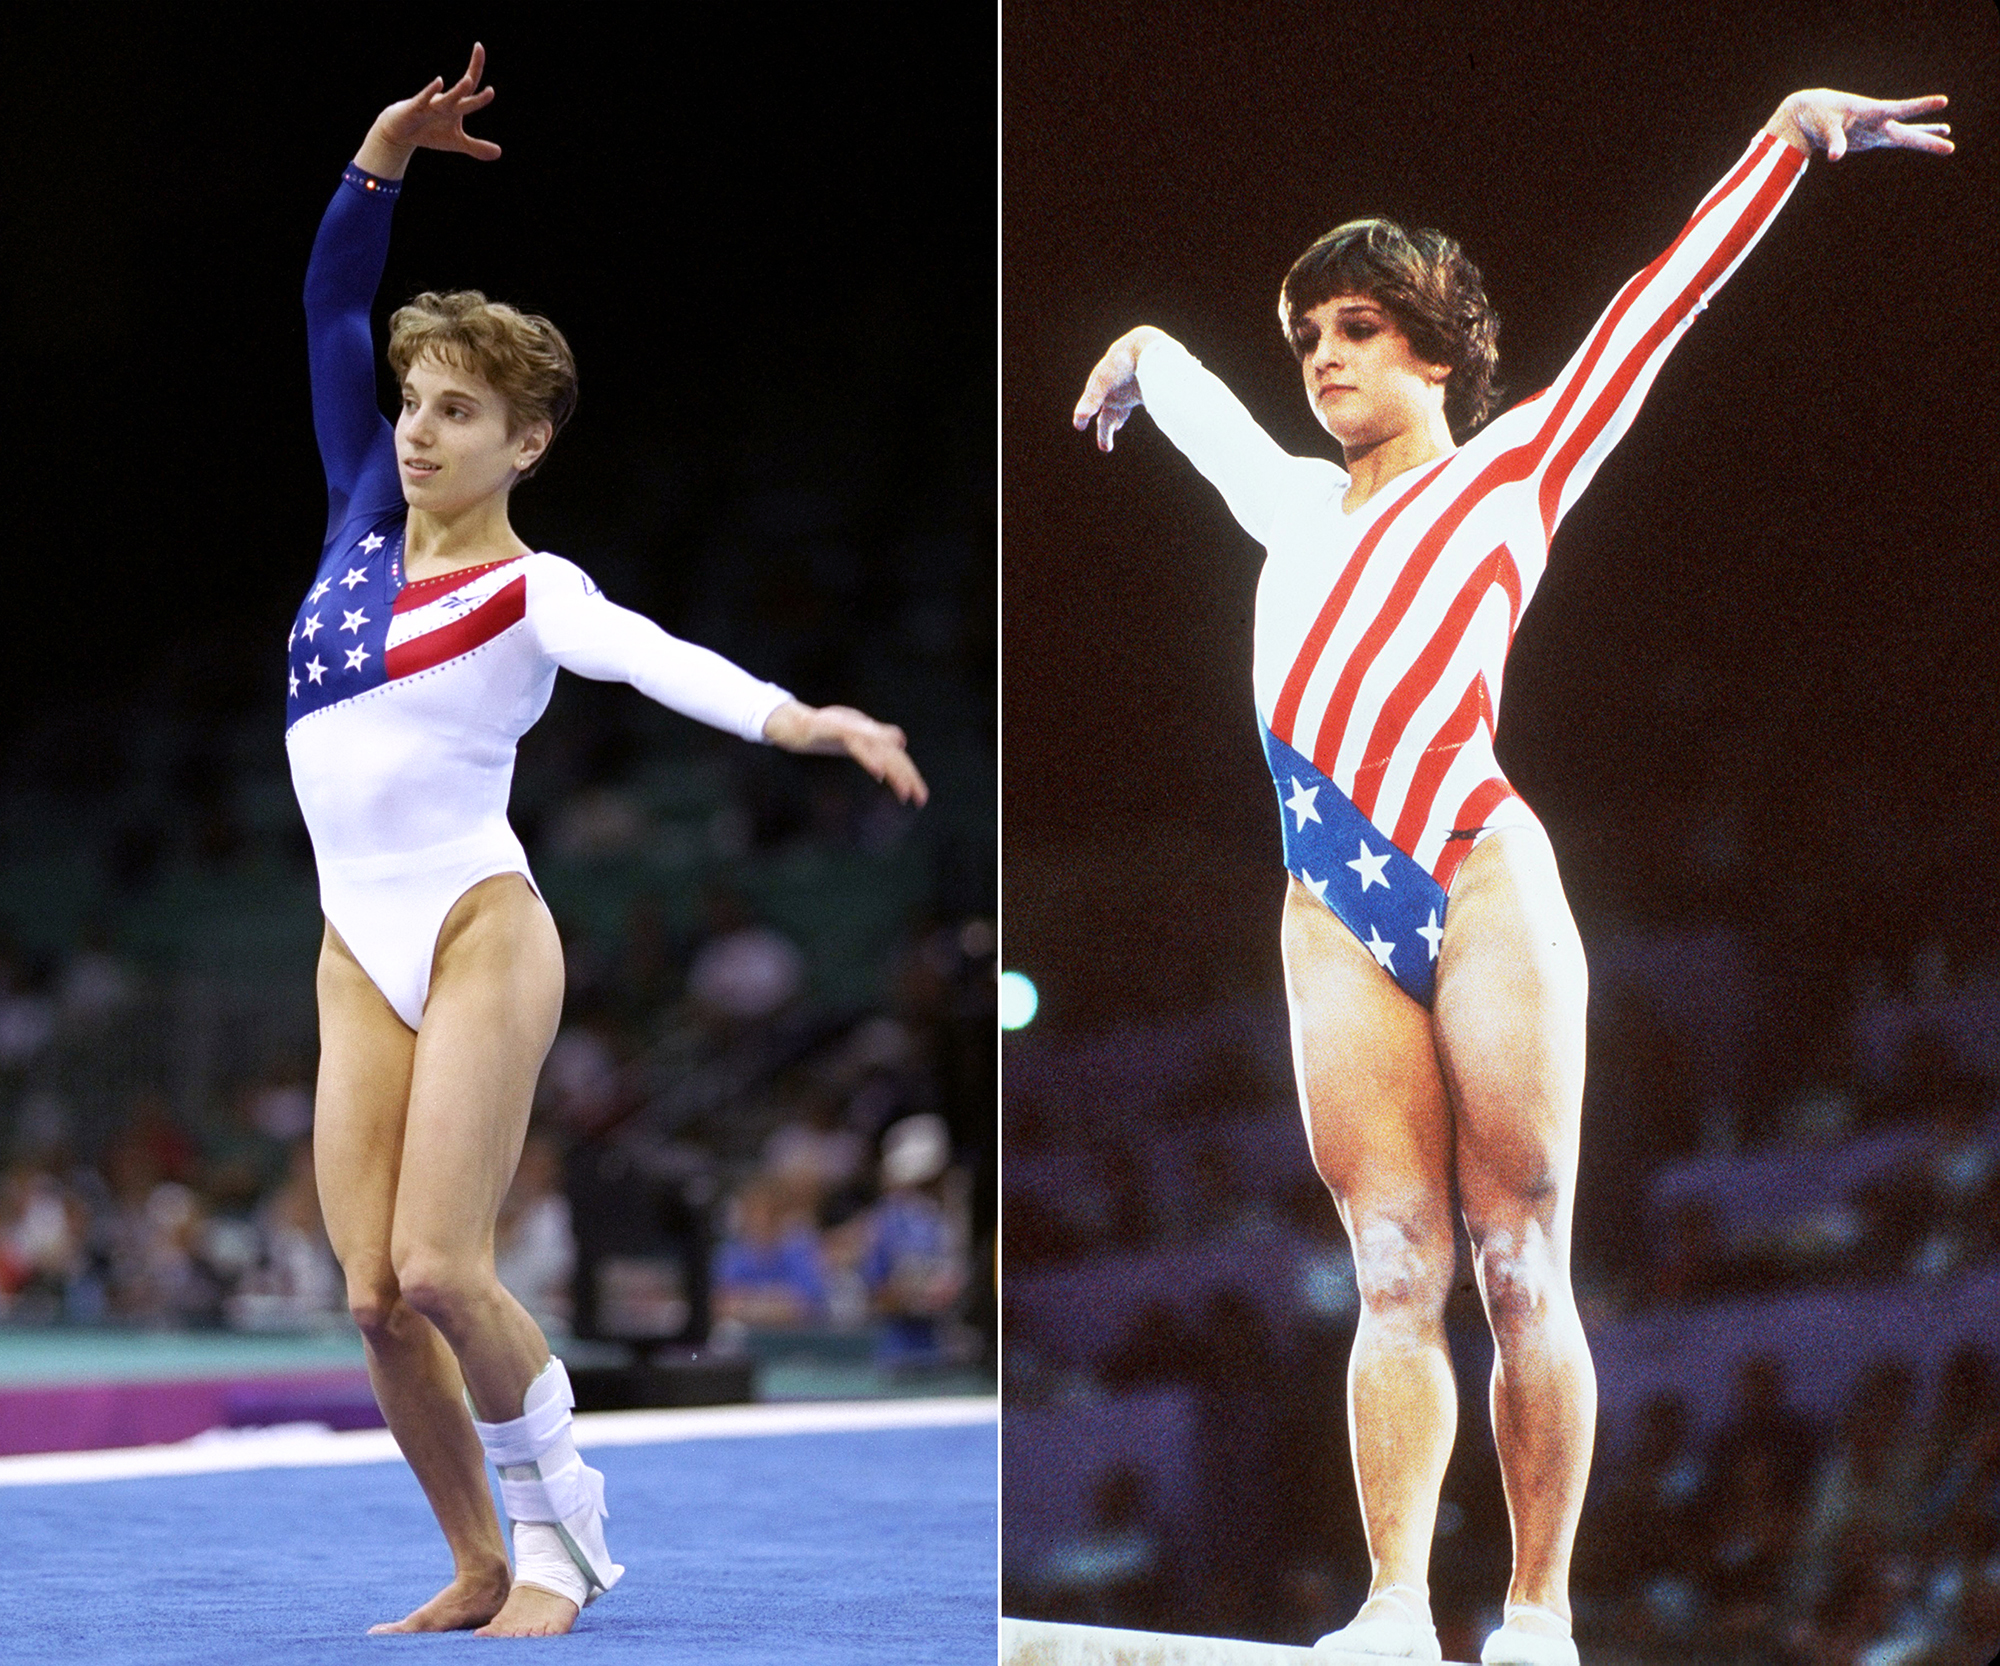 <p>1984 Los Angeles Olympics, Mary Lou Retton & 1996 Atlanta Olympics, The Magnificent Seven, USA</p>